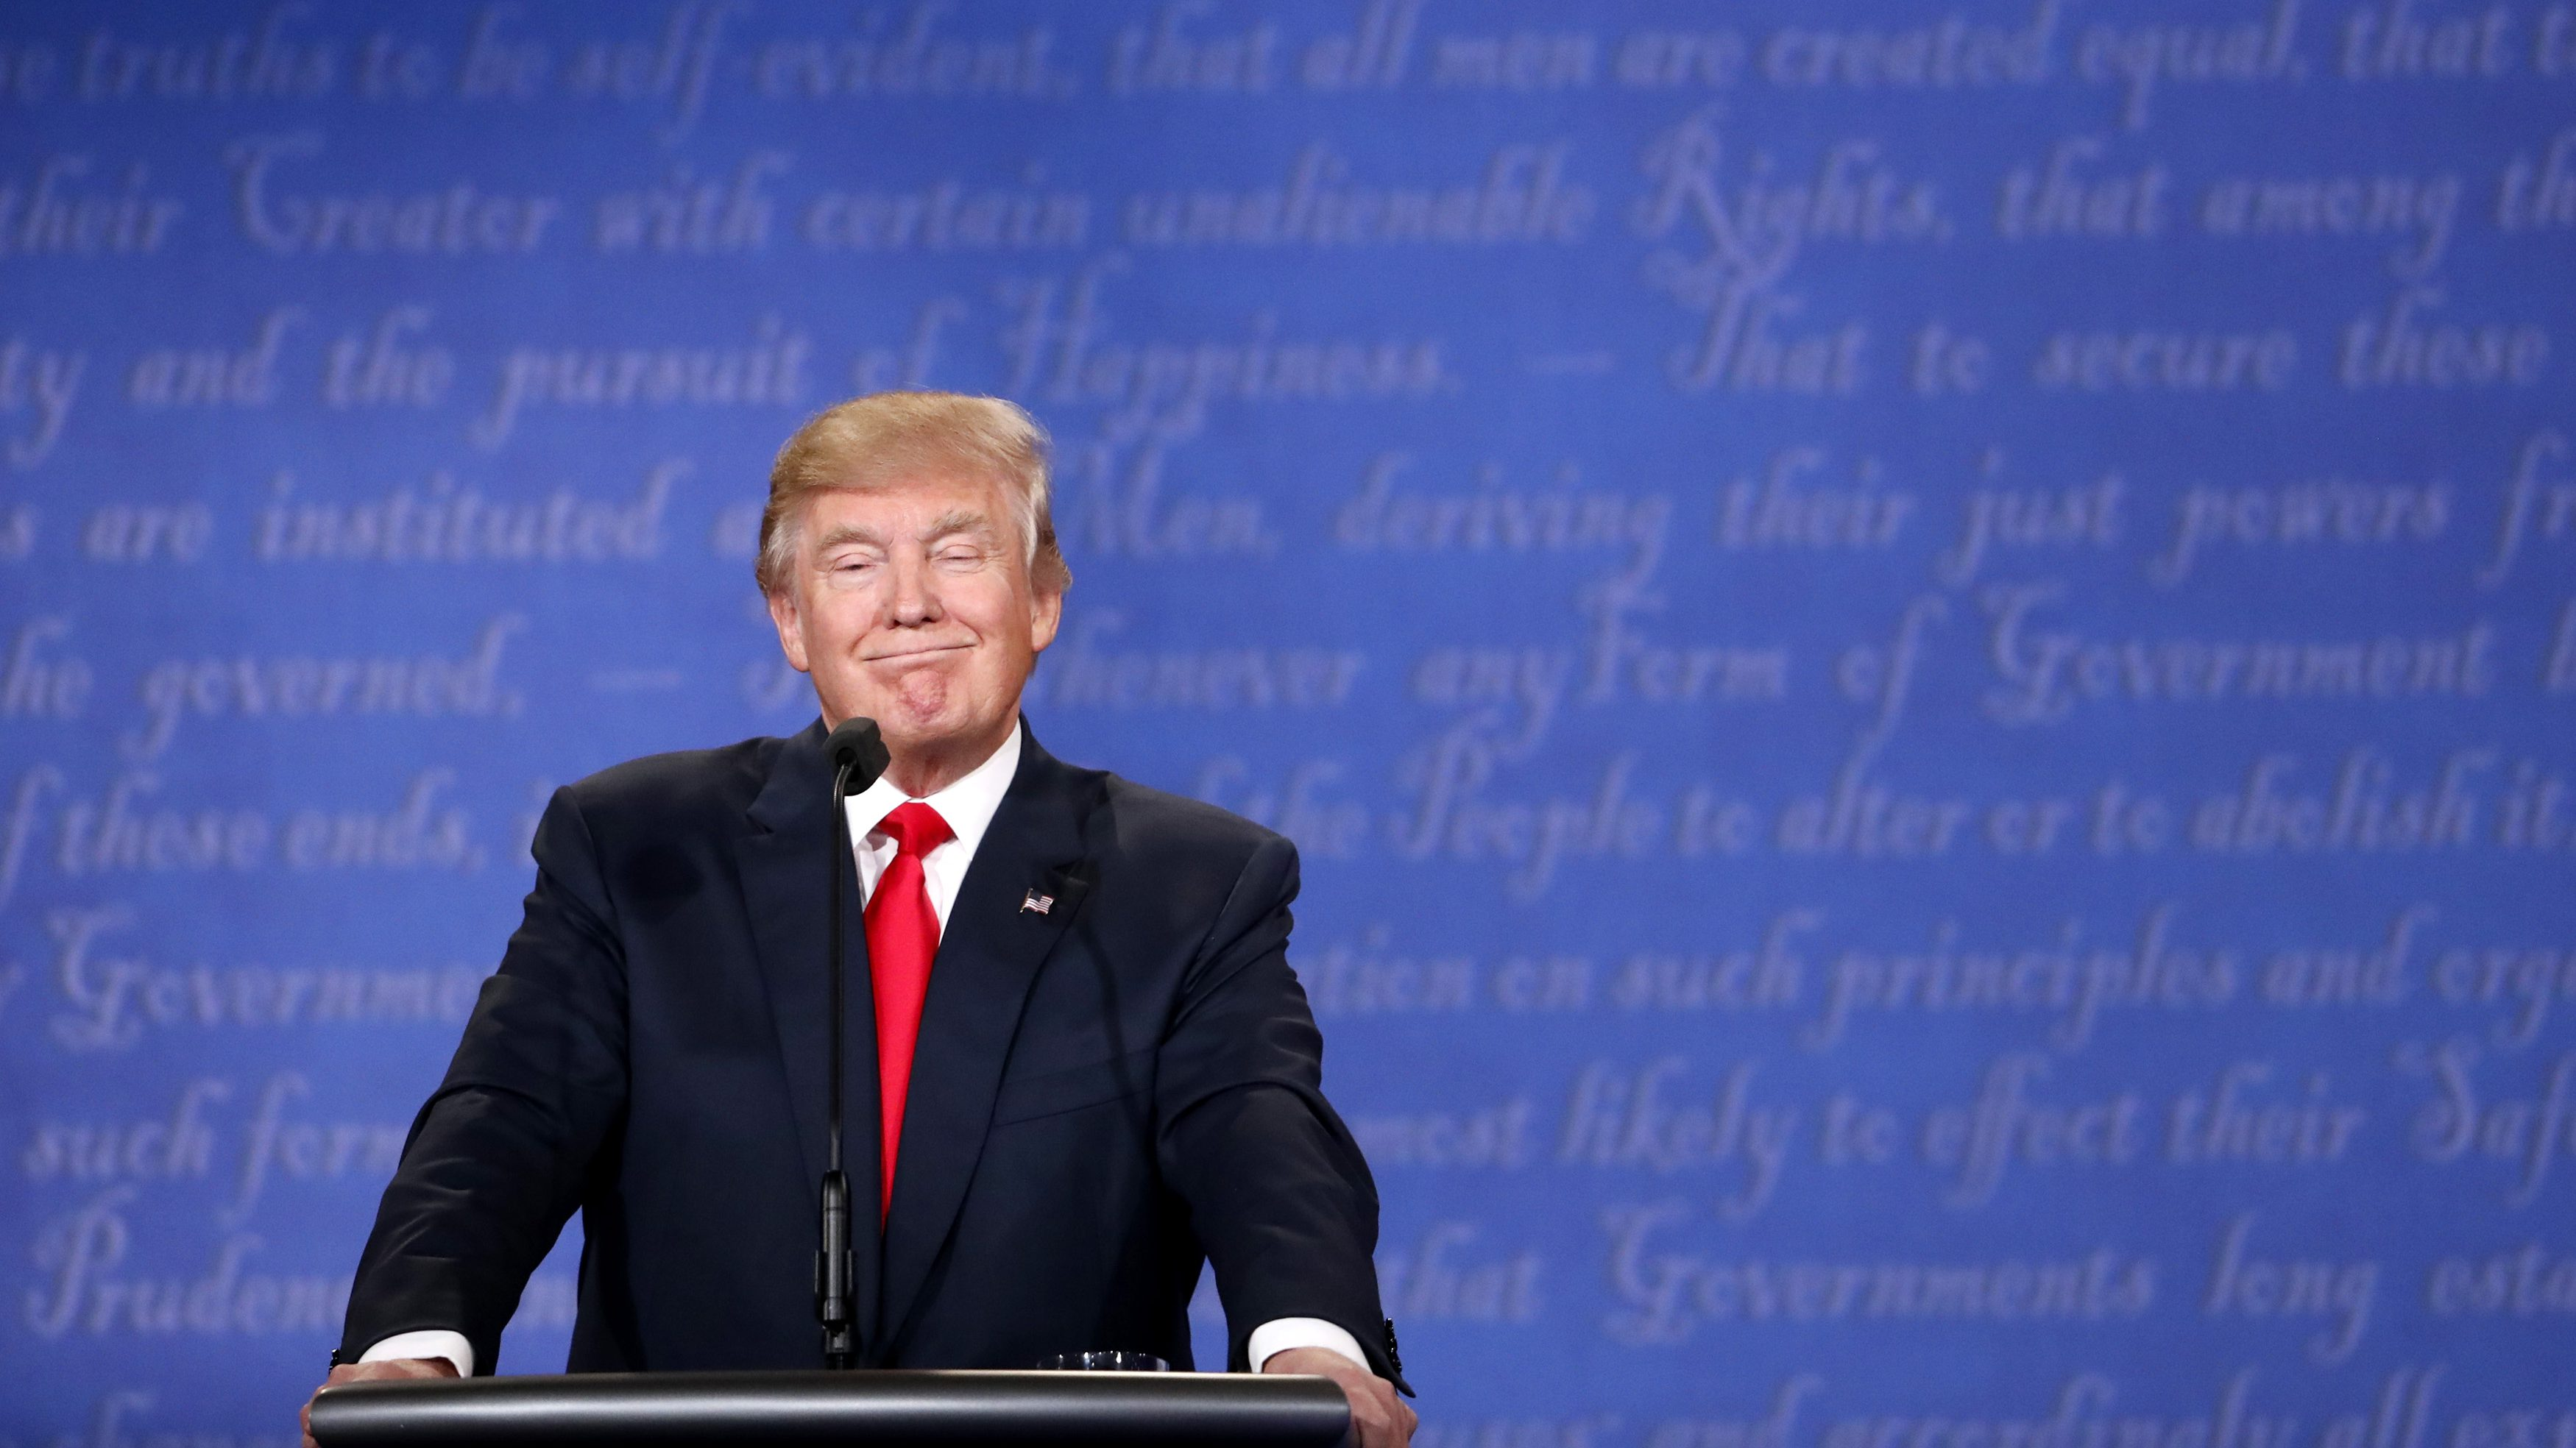 Republican U.S. presidential nominee Donald Trump smiles during the third and final debate with Democratic nominee Hillary Clinton.